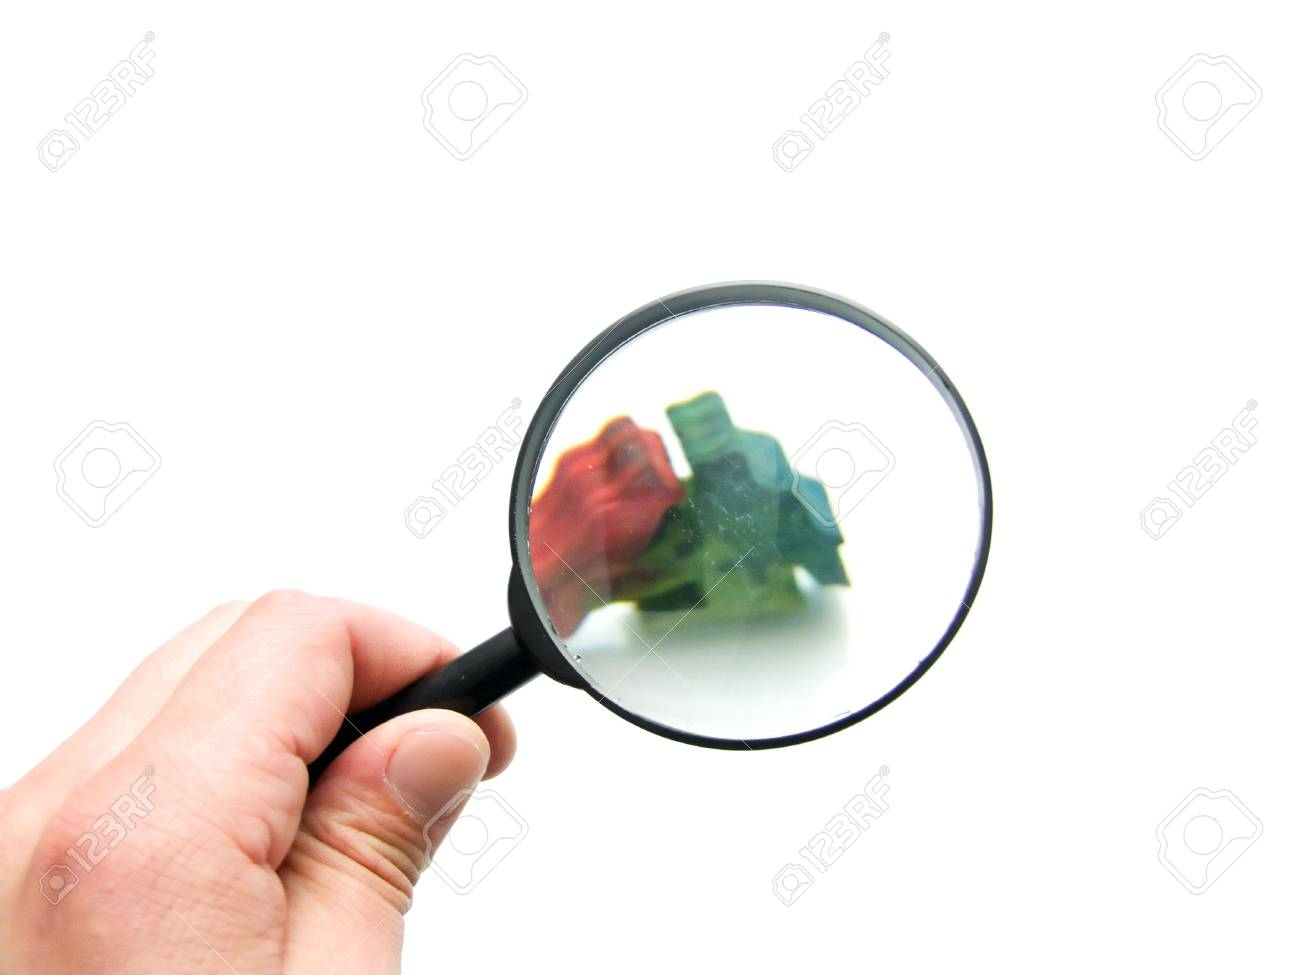 magnifying glass Stock Photo - 5330182